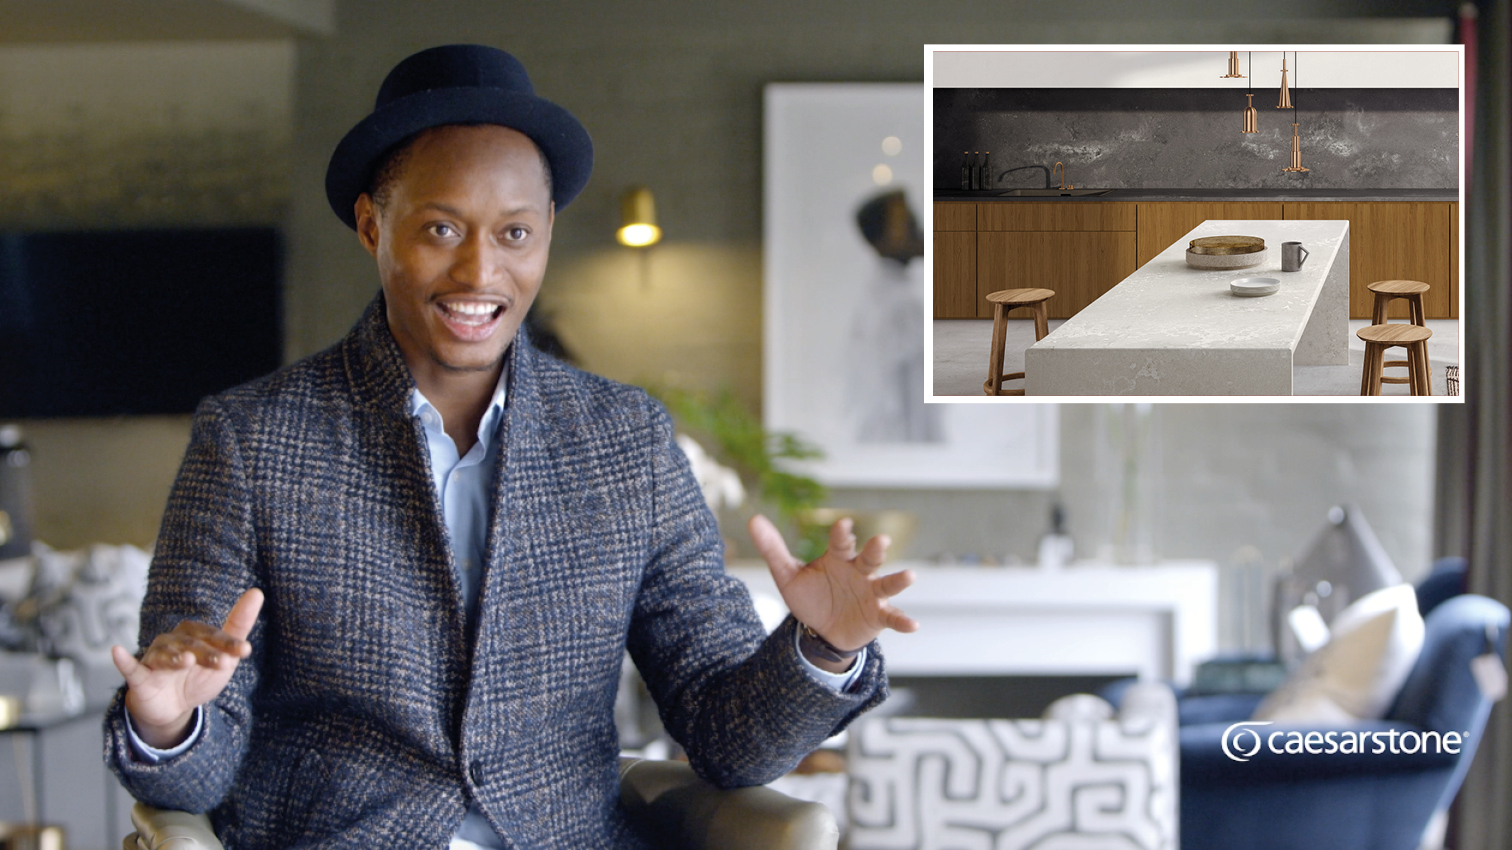 WATCH: Kitchen of the Future Design Trends